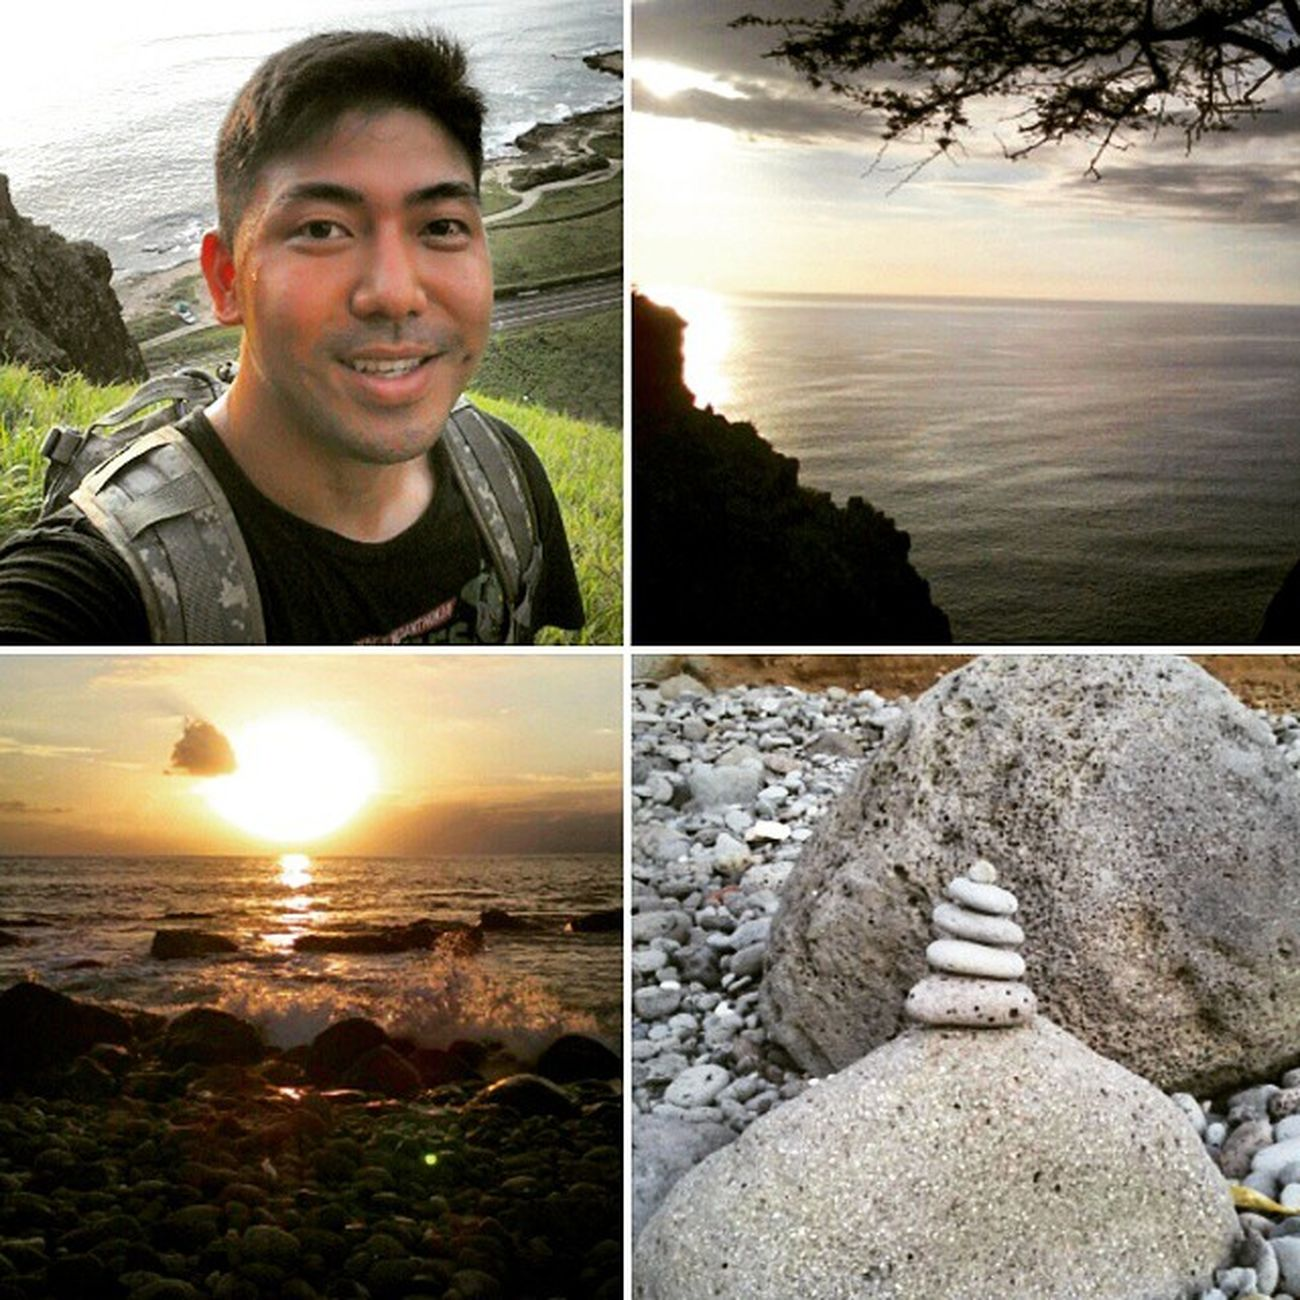 Today's adventure in waianae. Uppermakuacave Zen Hikingadventure HiLife Sunset Epichi Venturehawaii Fitlife Latepost